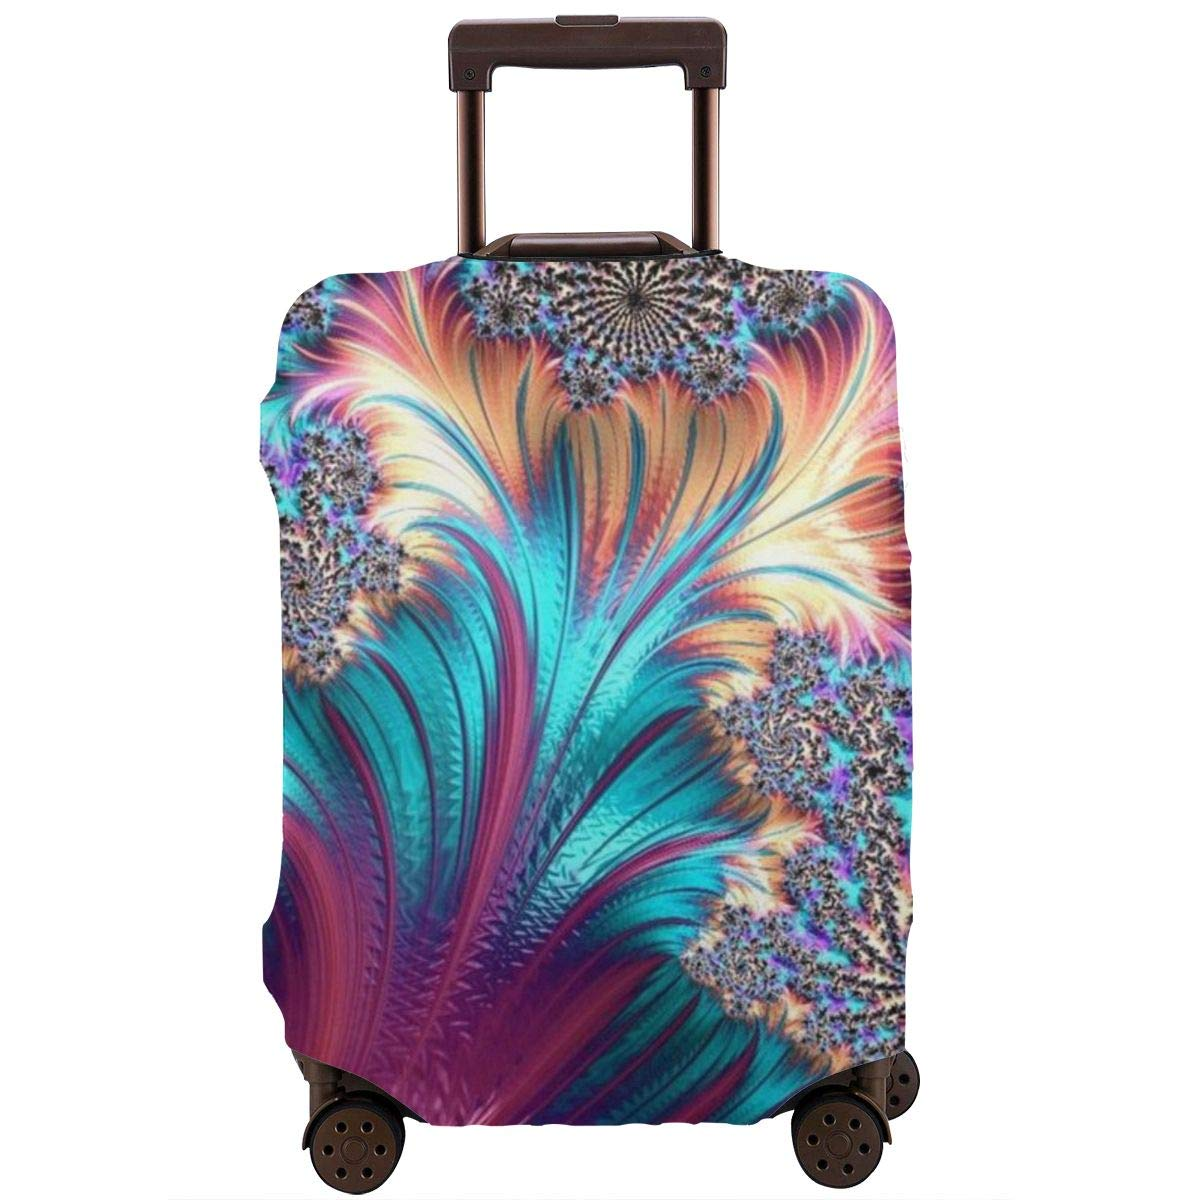 Luggage Cover Fractal Puffy Feather Art Purple Protective Travel Trunk Case Elastic Luggage Suitcase Protector Cover